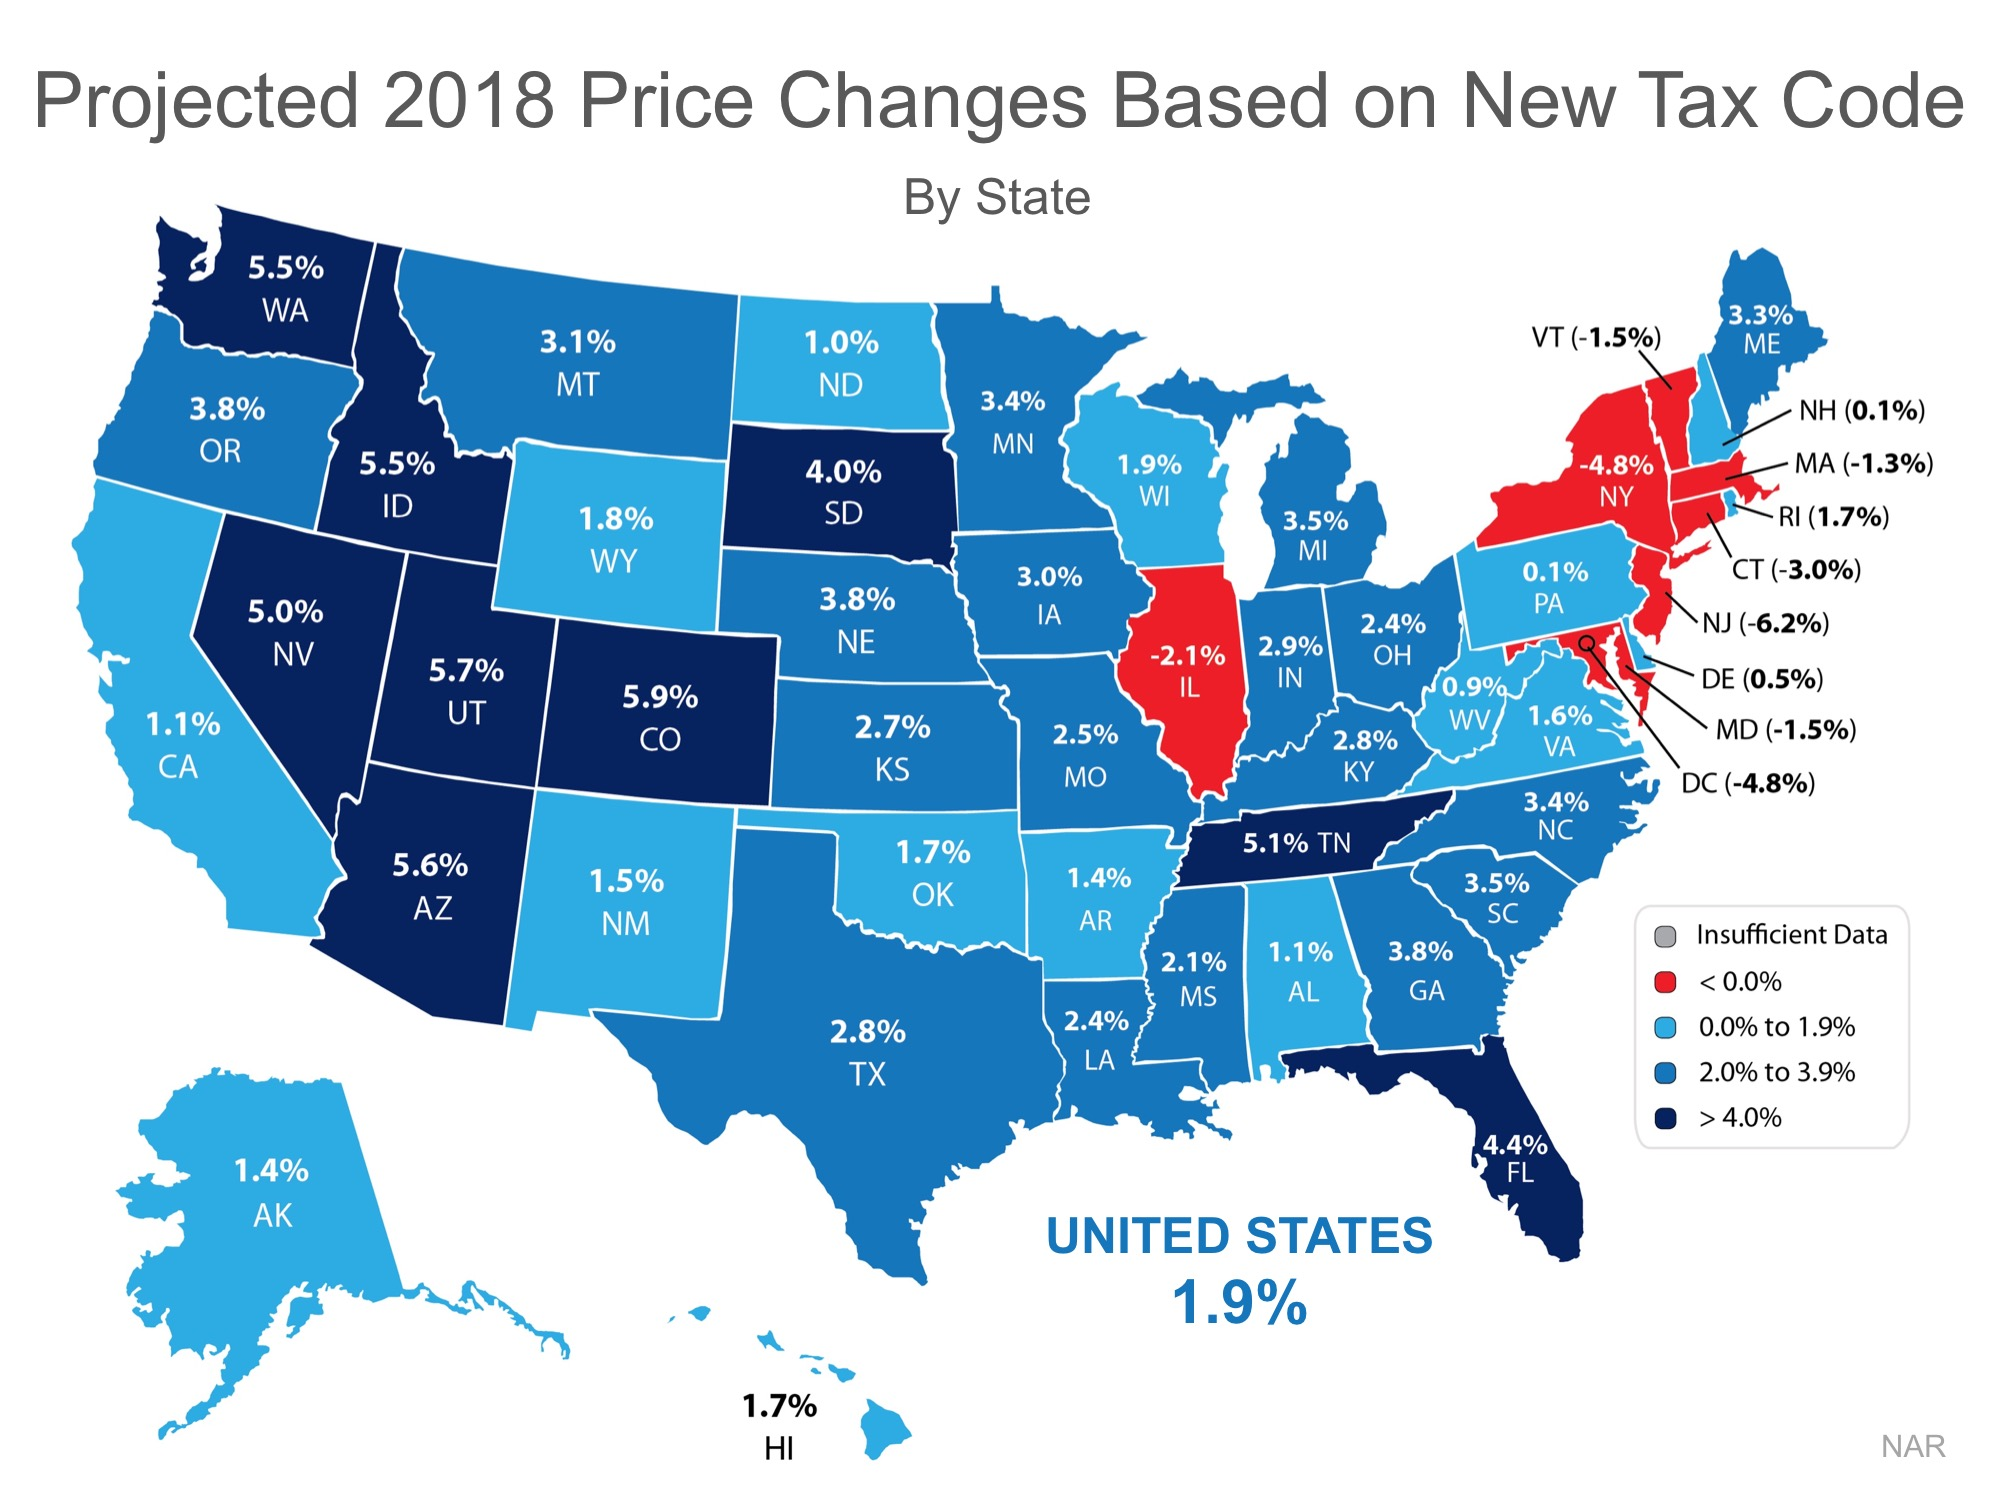 What Impact Will the New Tax Code Have on Home Values? | Simplifying The Market